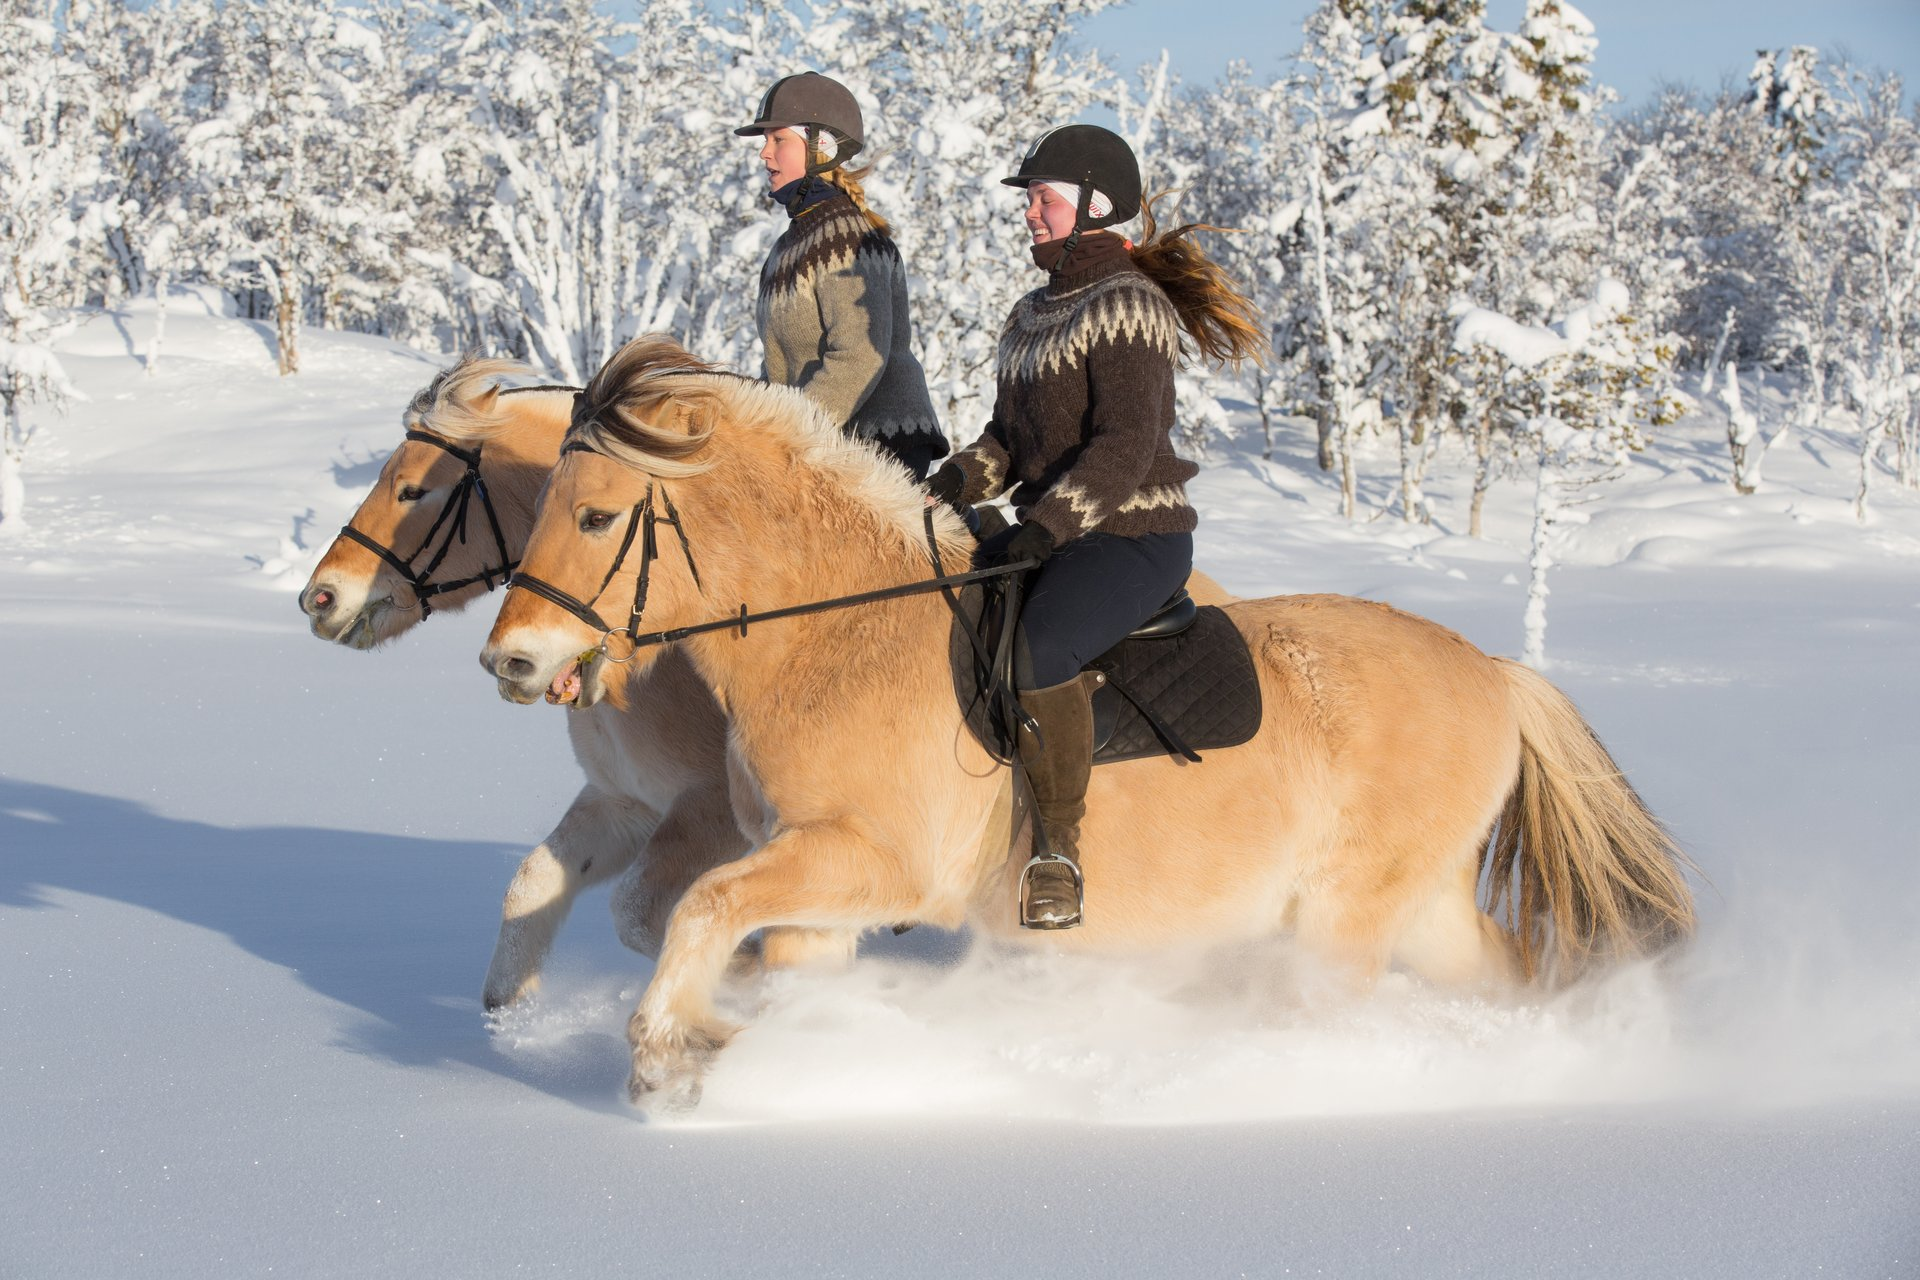 Horse Riding in the Snow in Norway 2020 - Best Time